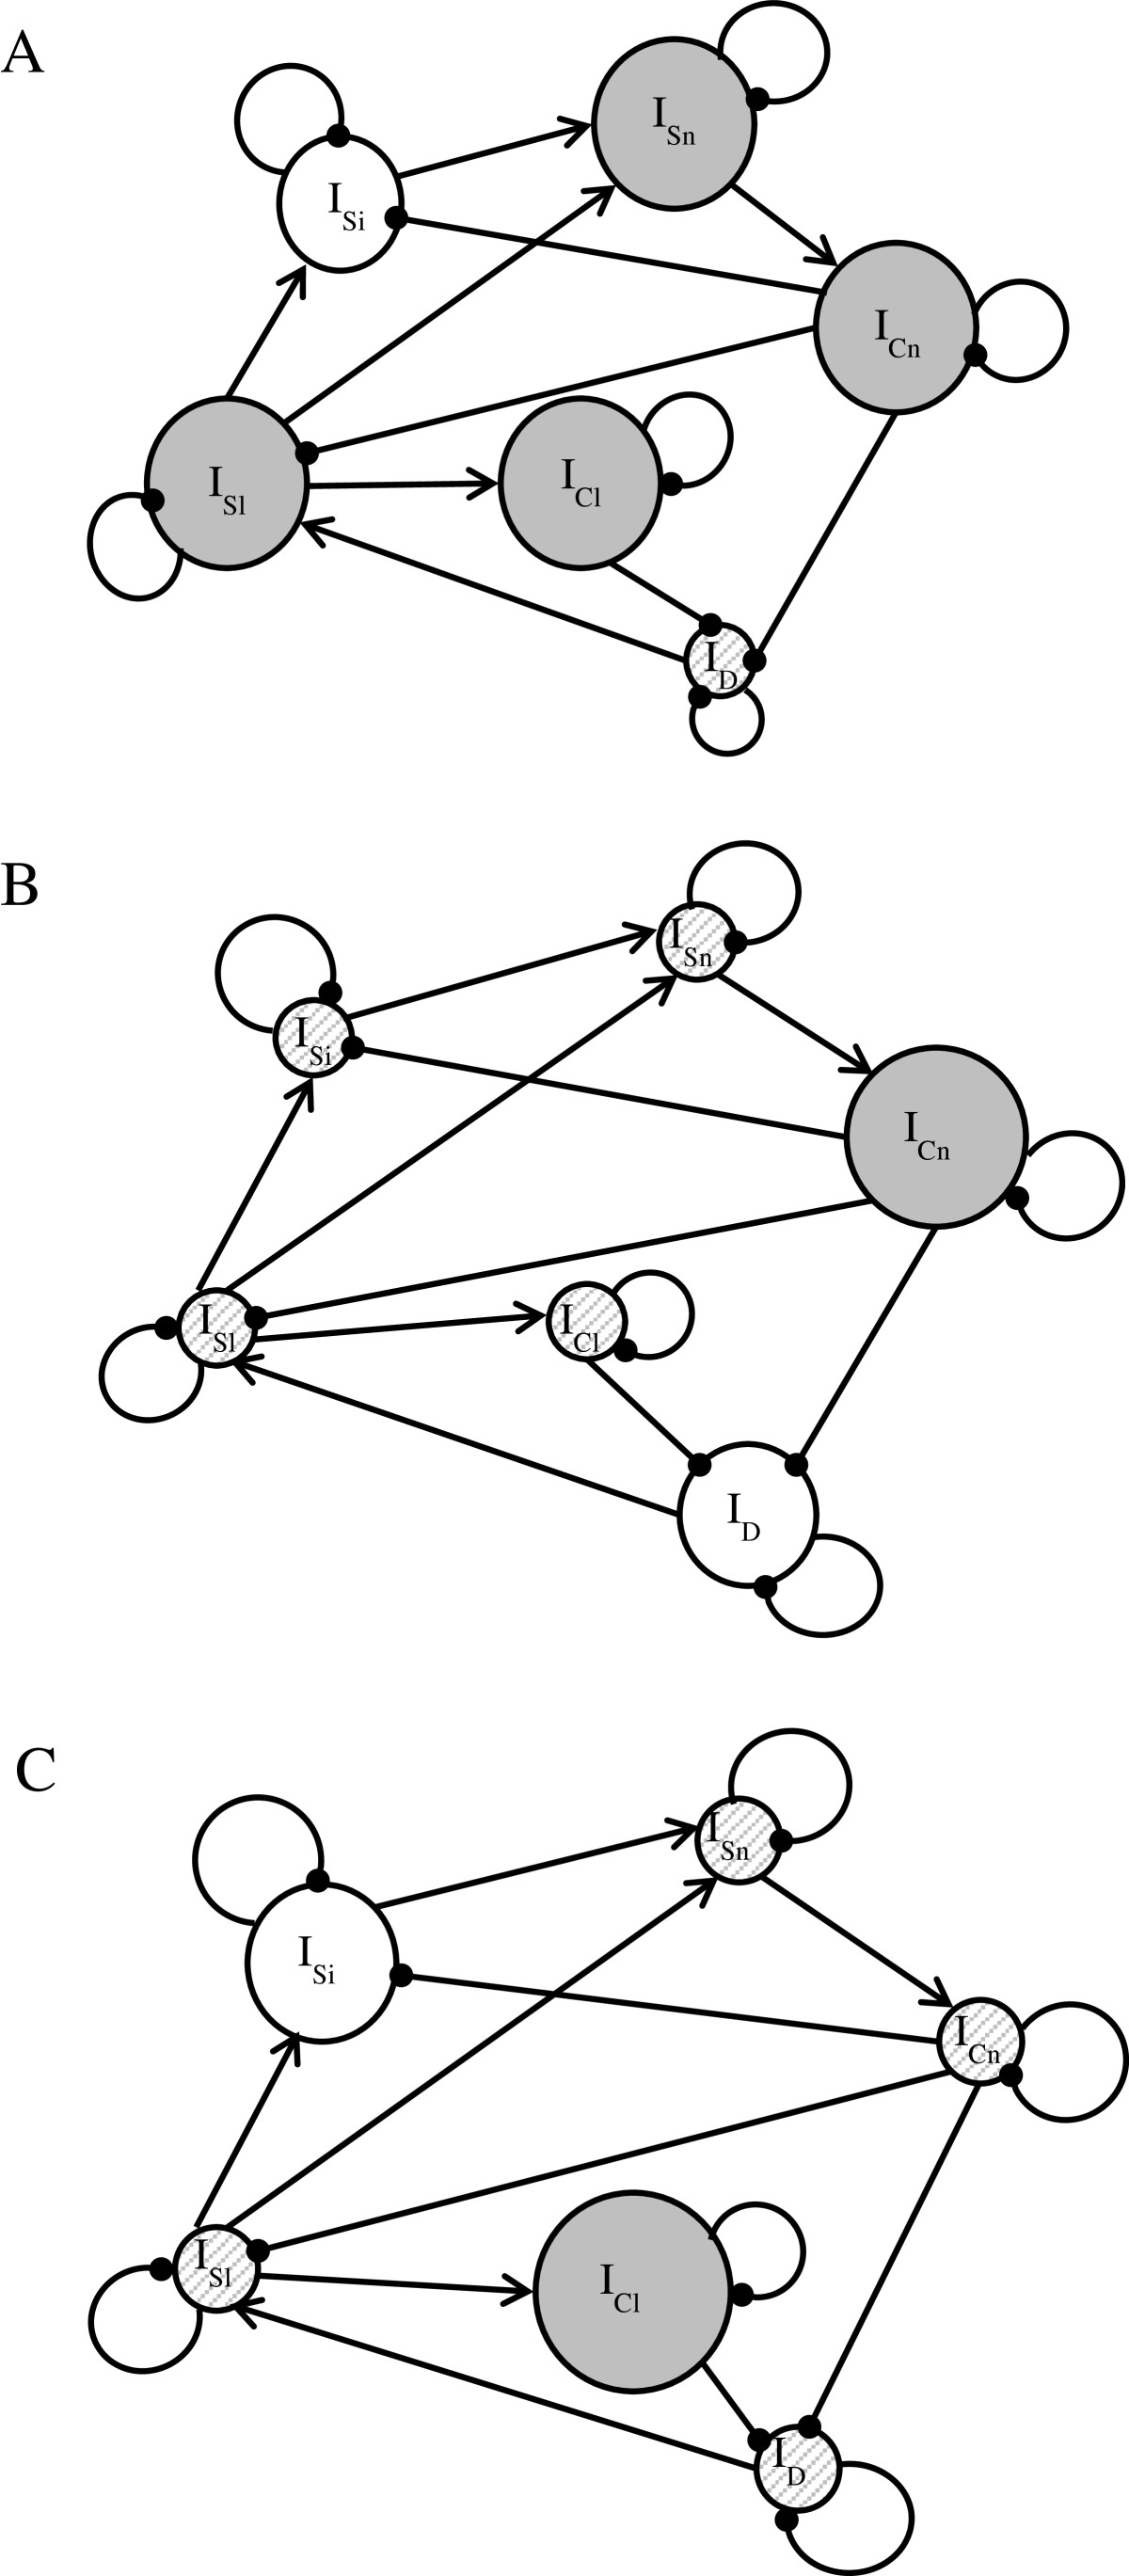 http://static-content.springer.com/image/art%3A10.1186%2F1742-7622-10-7/MediaObjects/12982_2013_Article_113_Fig4_HTML.jpg